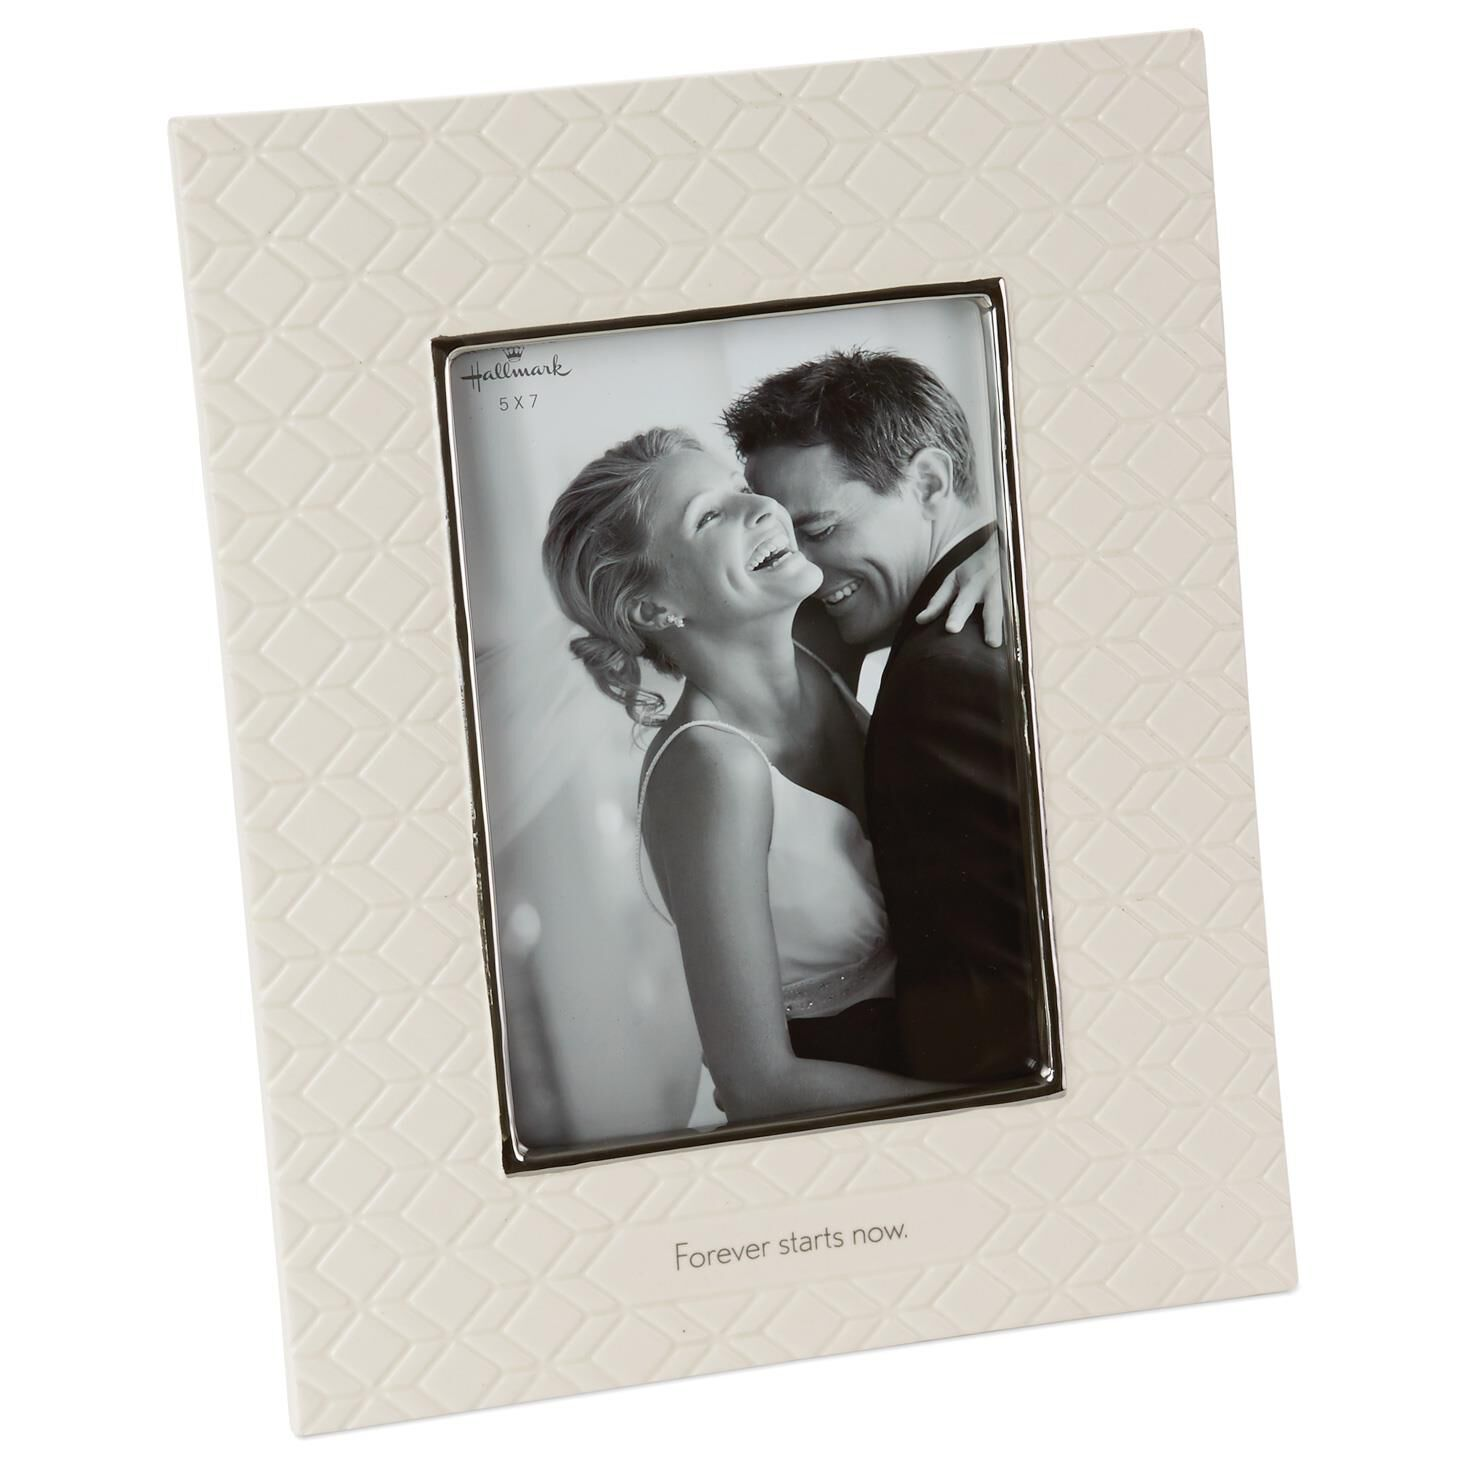 forever starts now wedding picture frame 5x7